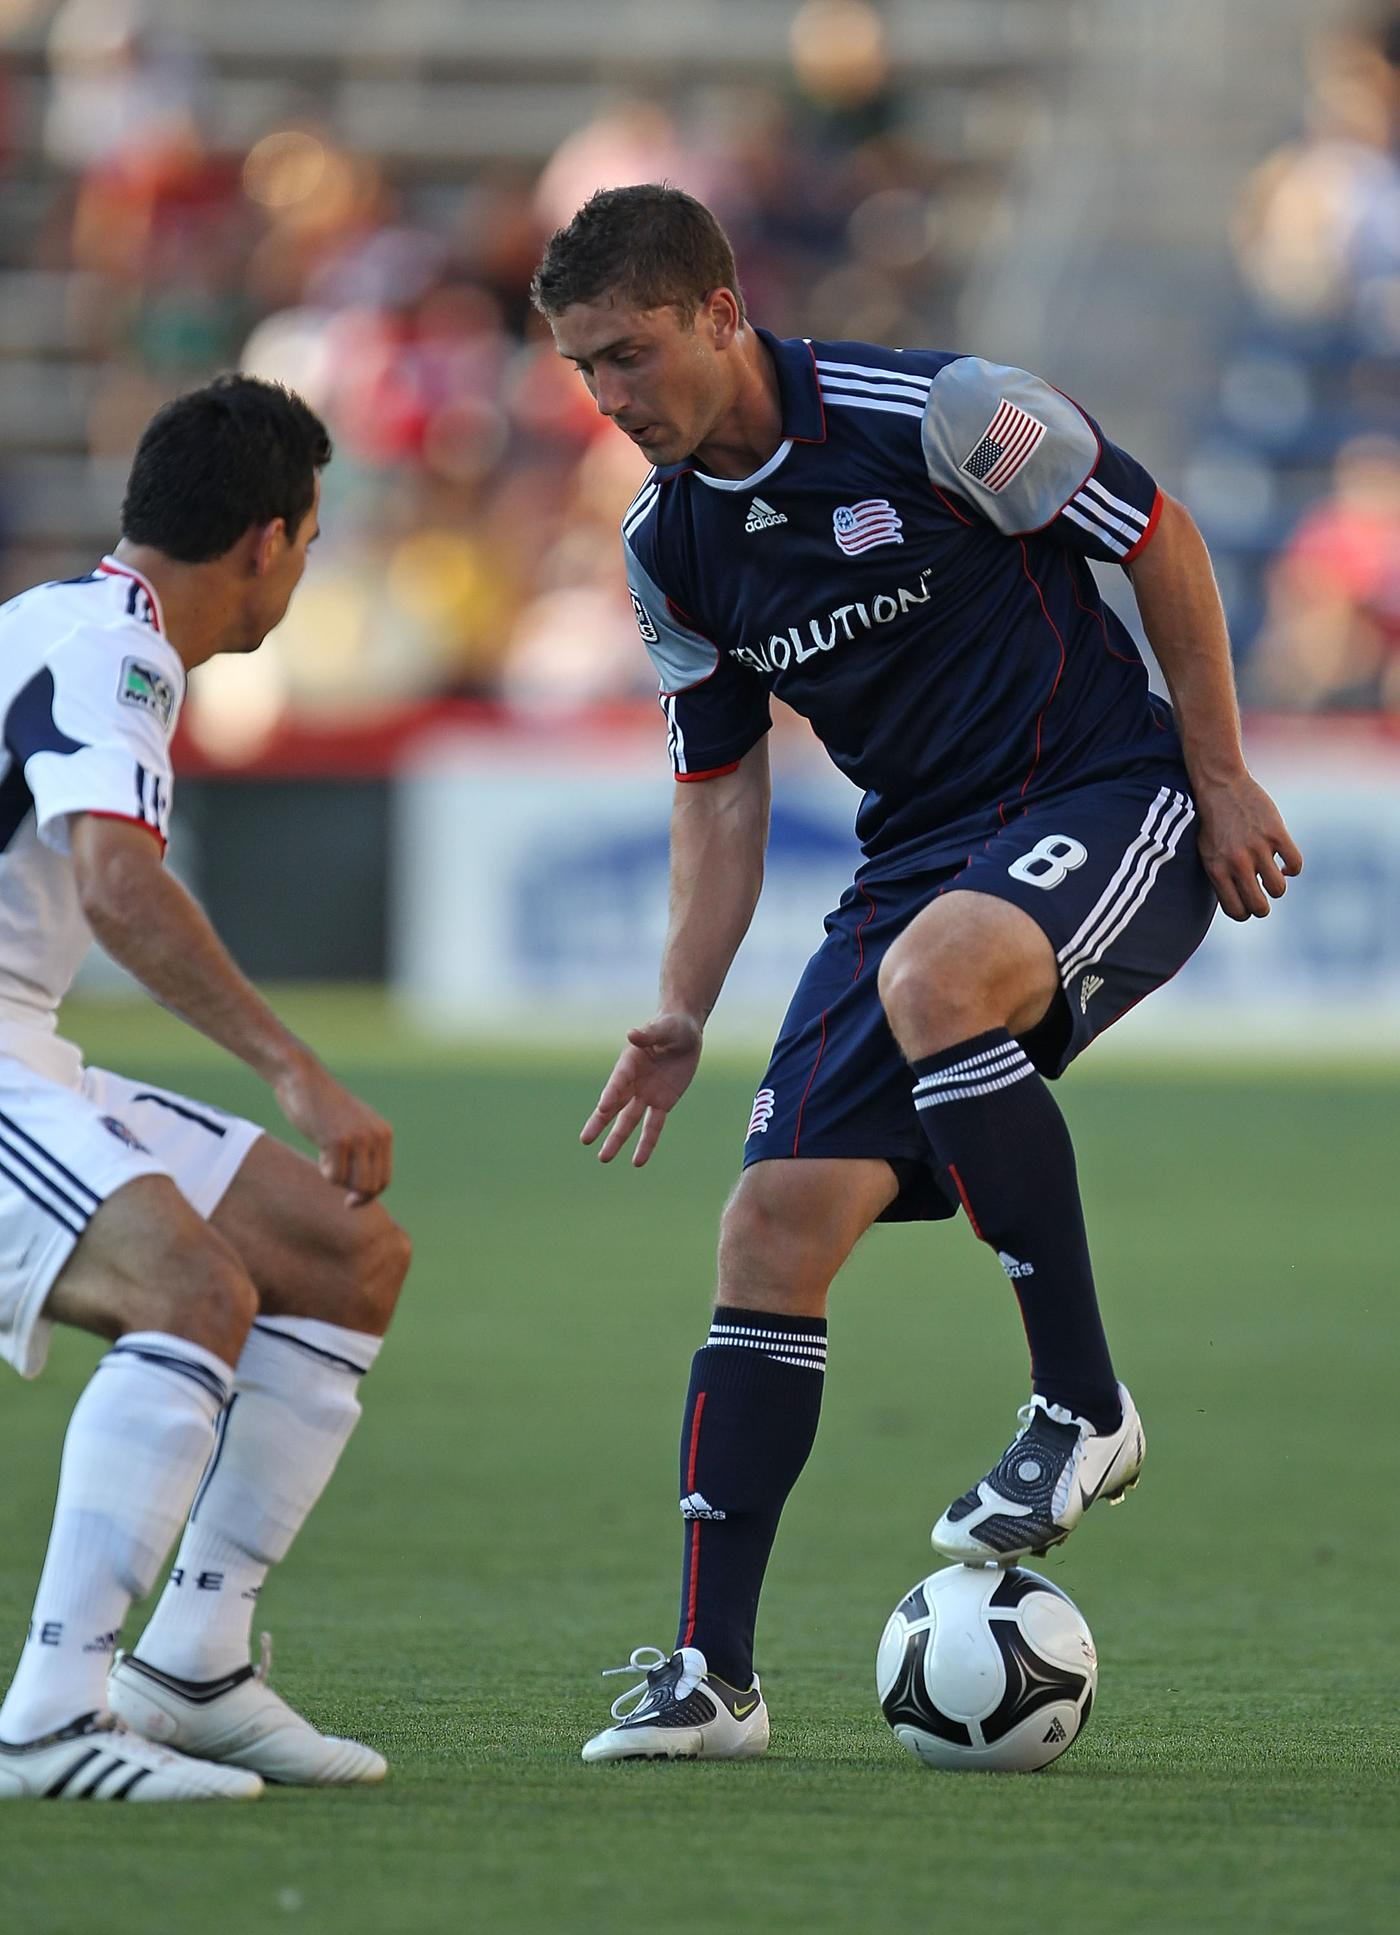 Chris Tierney has played five different positions for the Revs in 2010